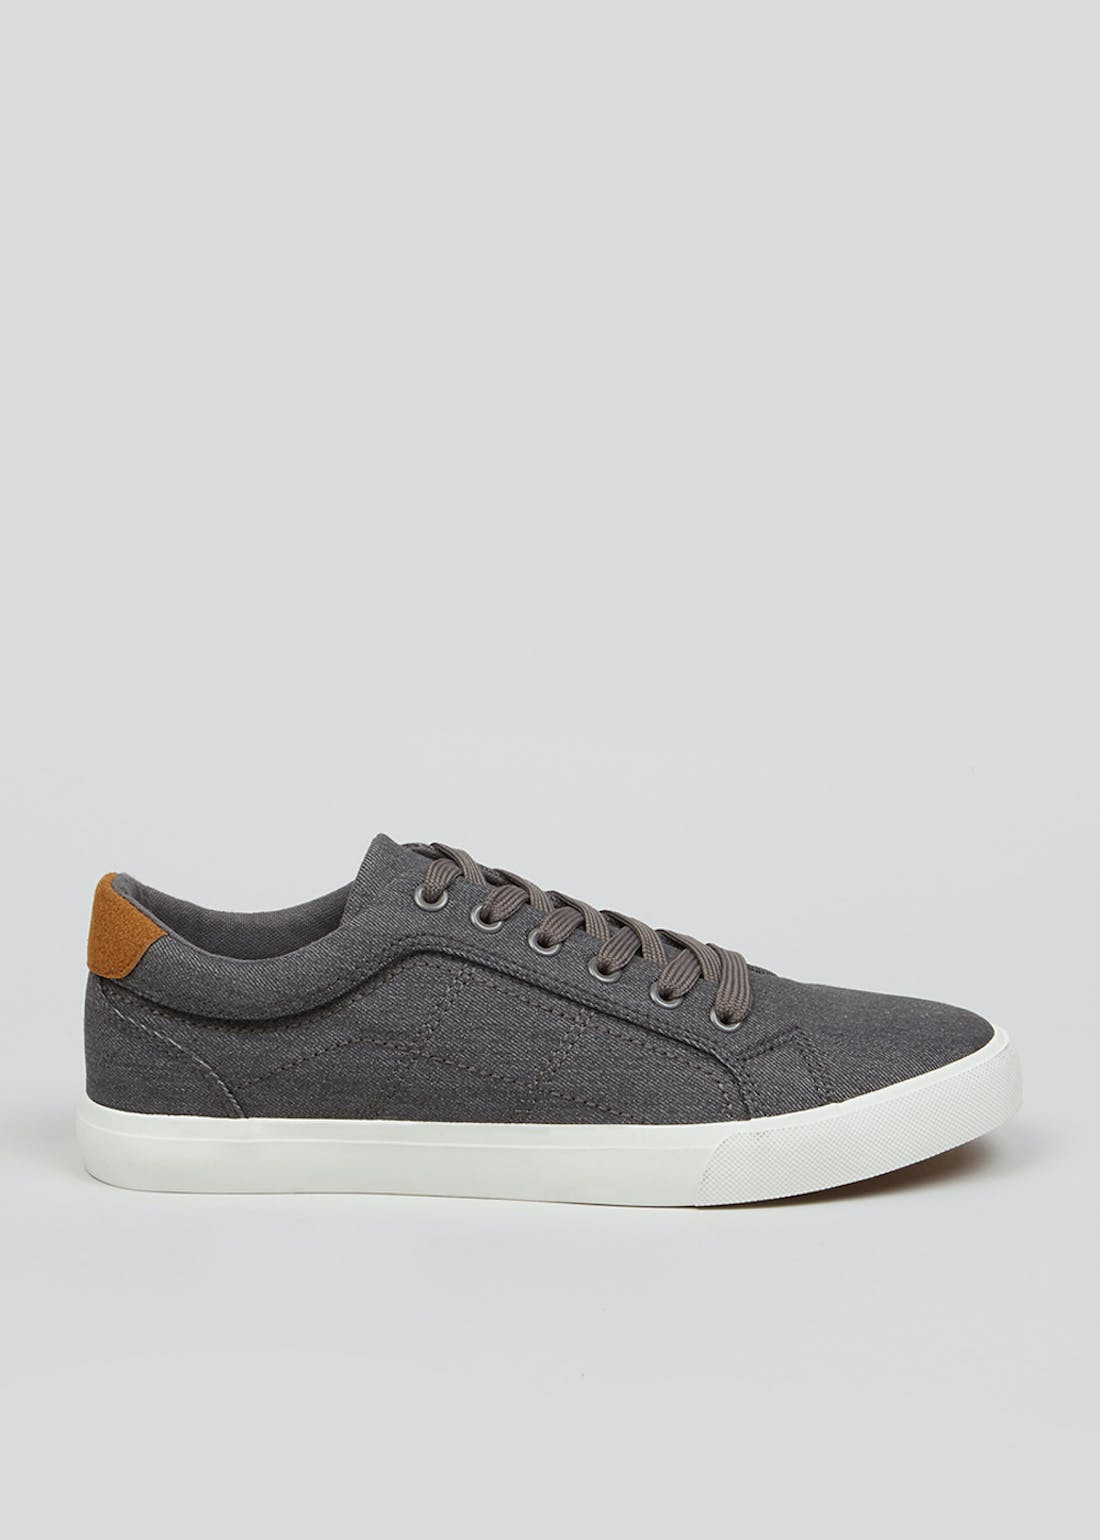 Grey Lace Up Canvas Trainers